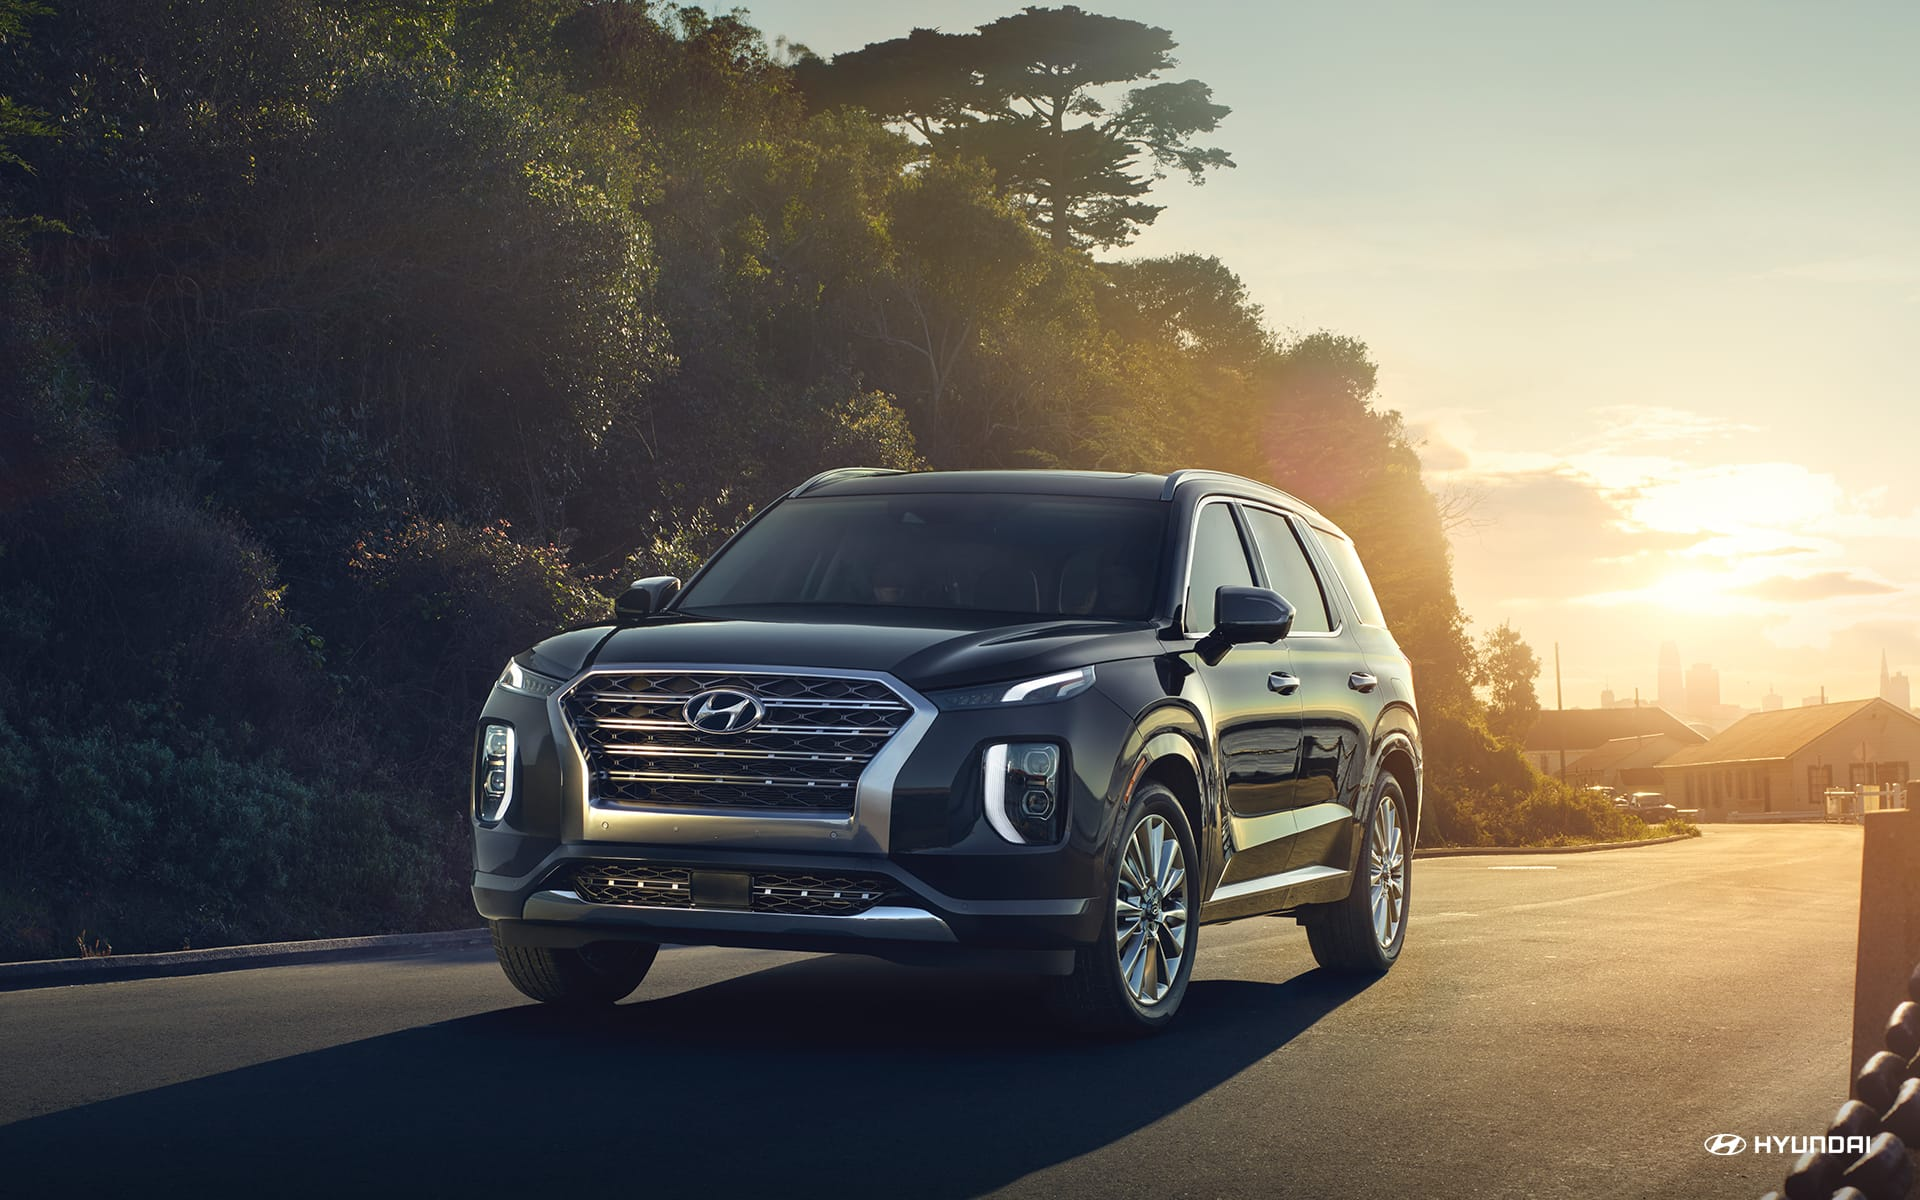 2020 Hyundai Palisade Leasing near Richmond, VA